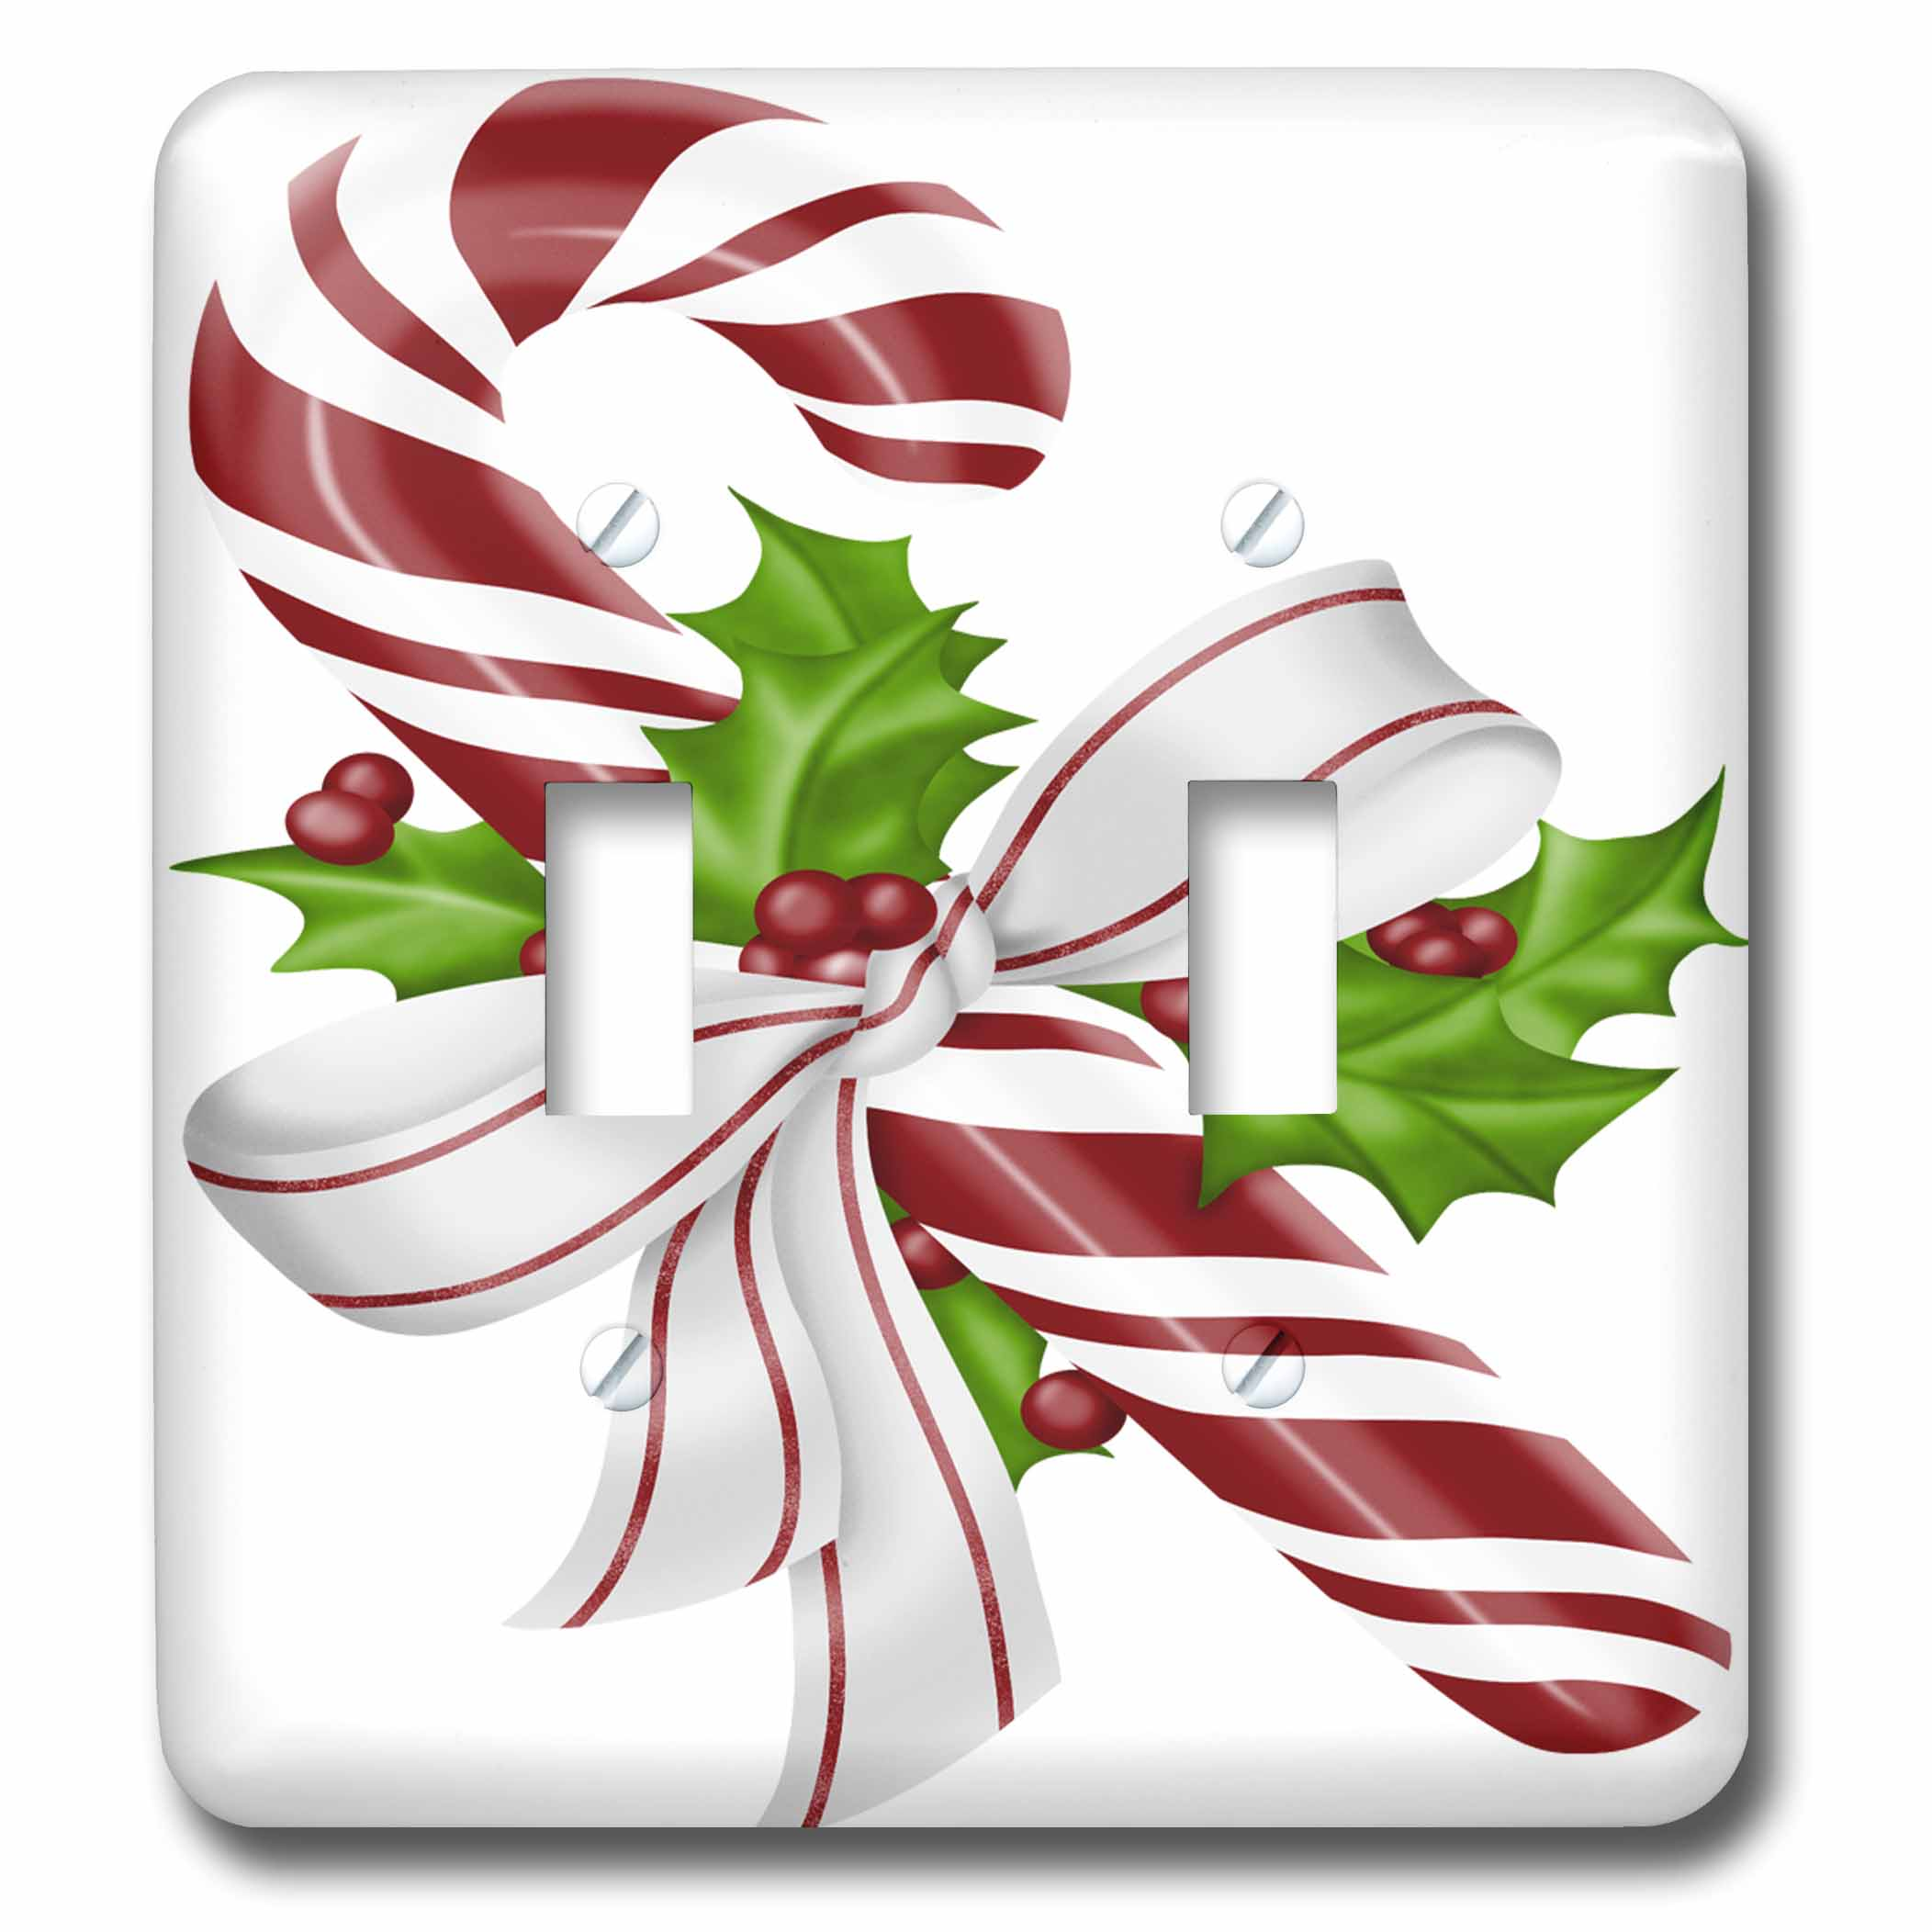 3drose Pretty Red And White Floral Christmas Candy Cane Illustration Double Toggle Switch Lsp 264886 2 Walmart Com Walmart Com